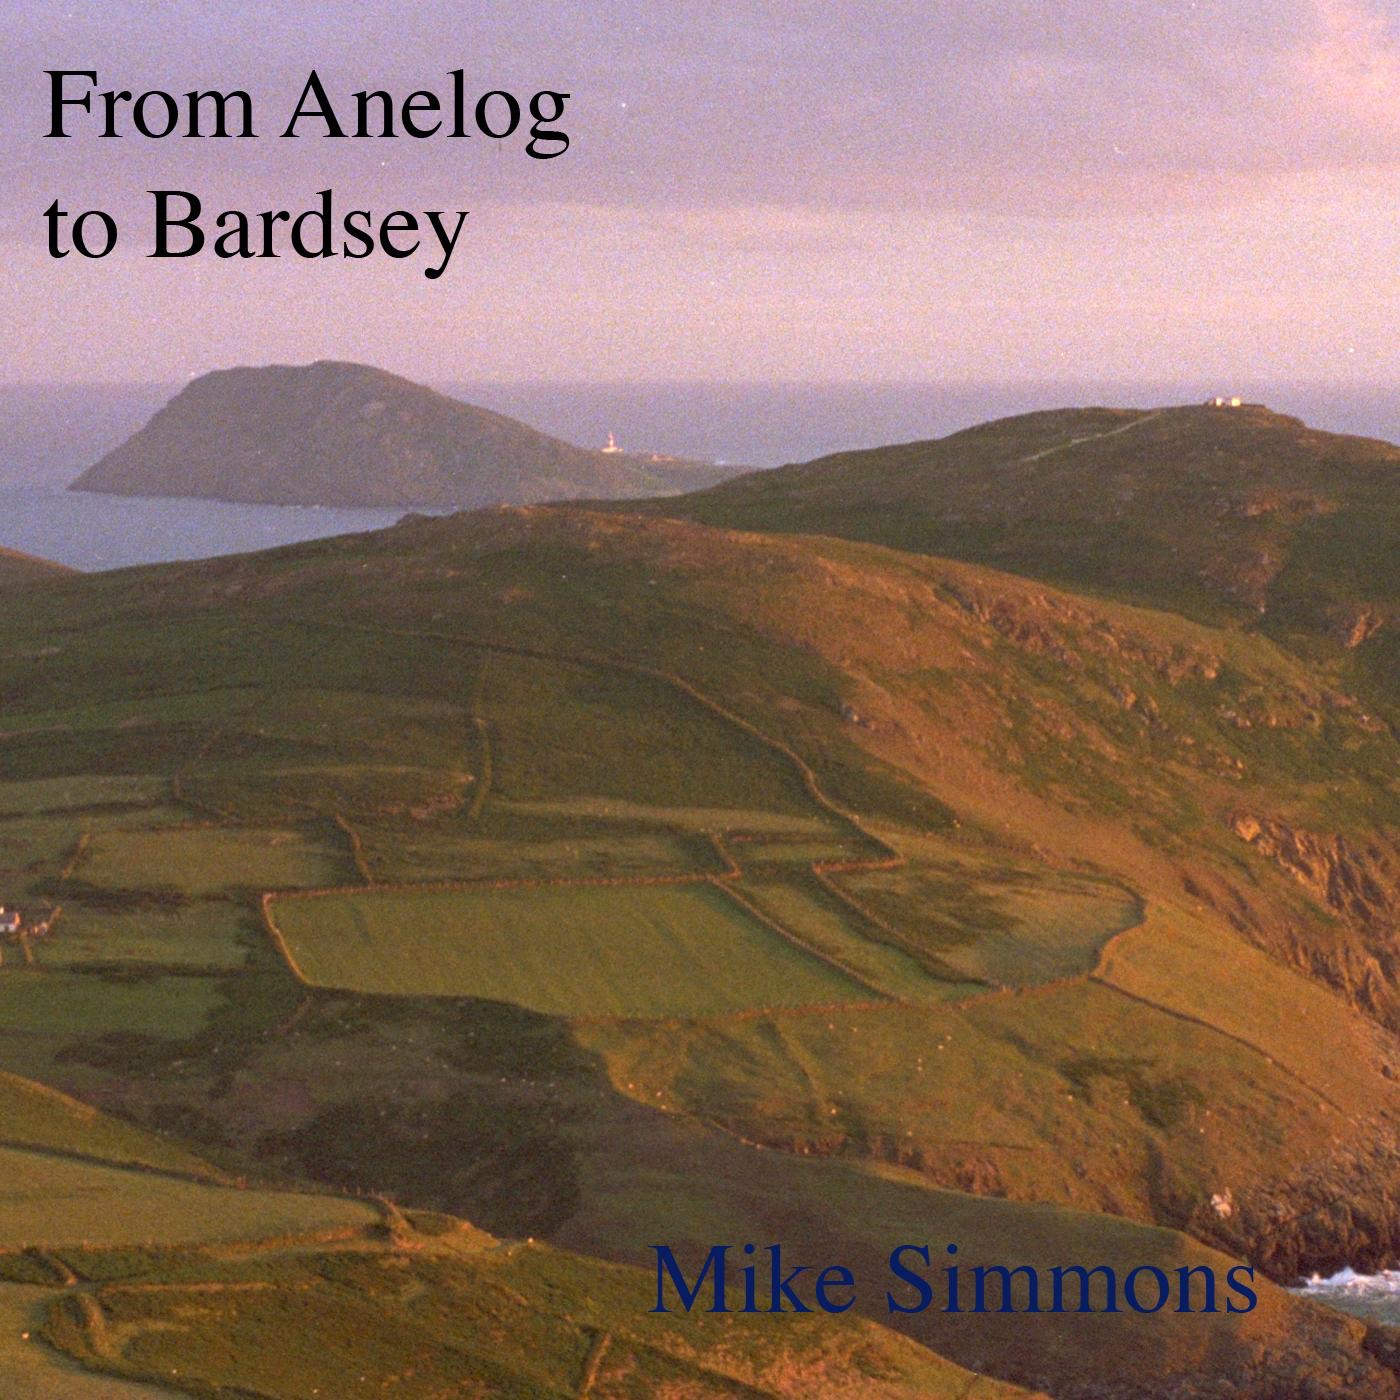 From Anelog to Bardsey